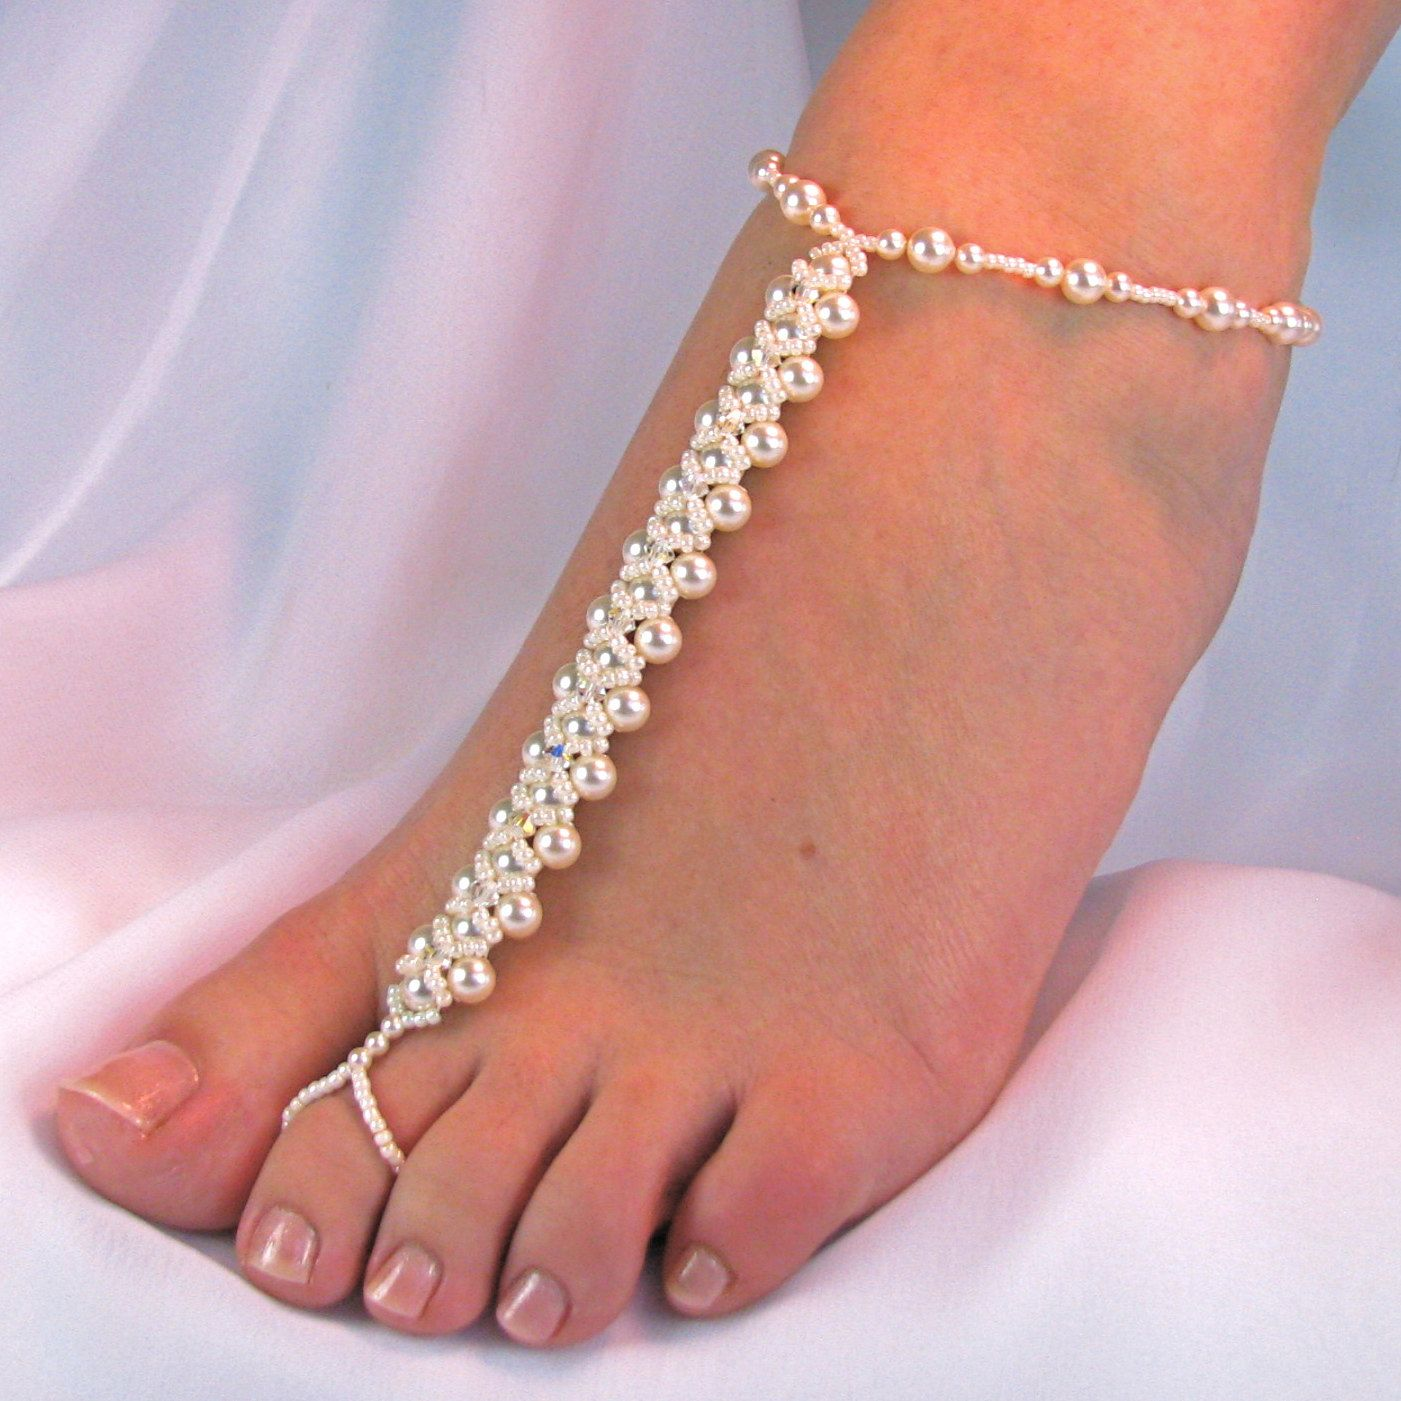 Barefoot Sandals Bridal Genuine Swarovski Crystal Pearl Foot Jewelry Design  2 Free Shipping 167a38221aaf